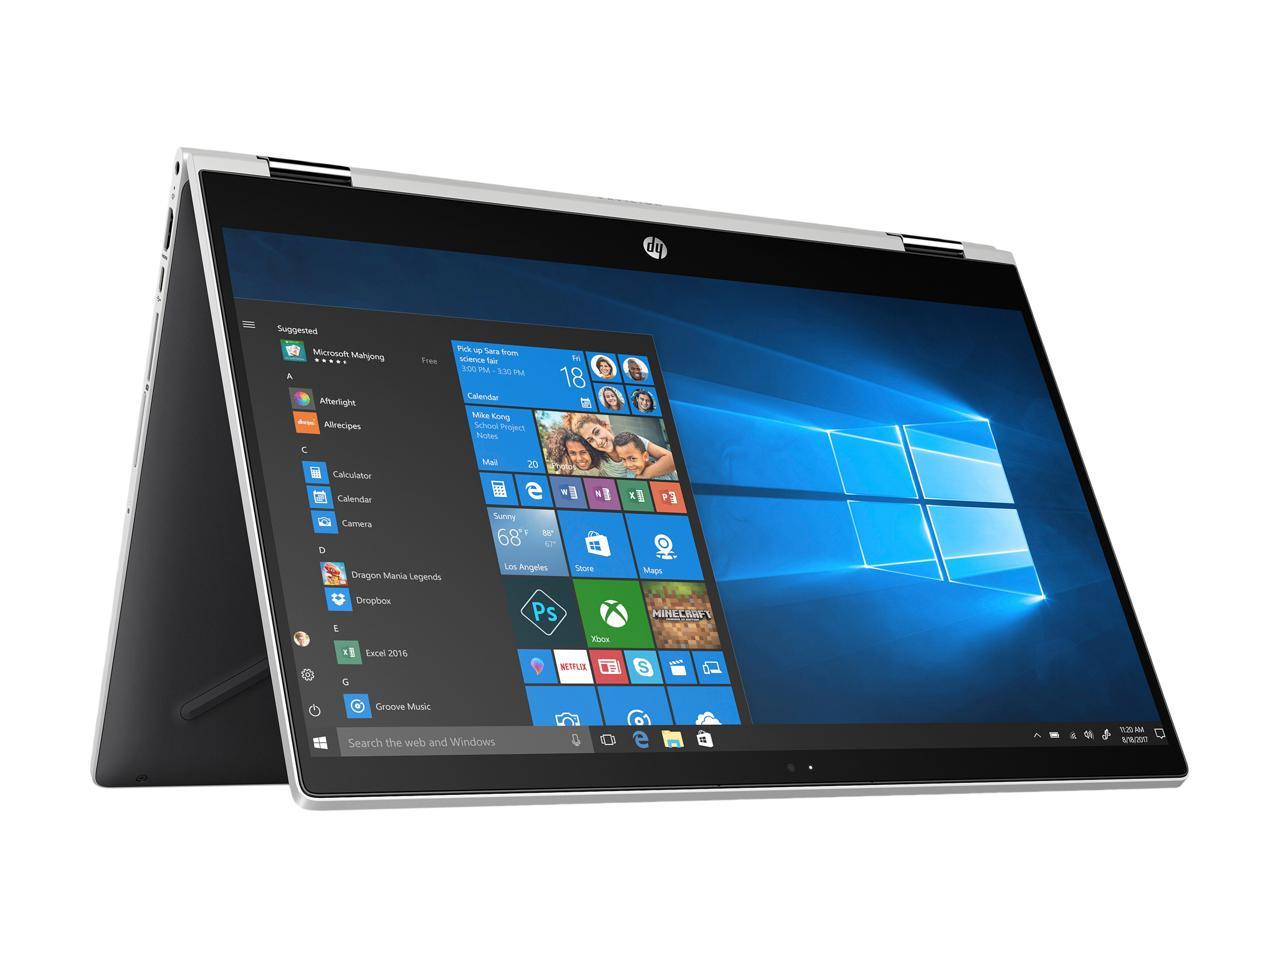 HP Pavilion x360 Convertible Touchscreen Laptop - 15.6